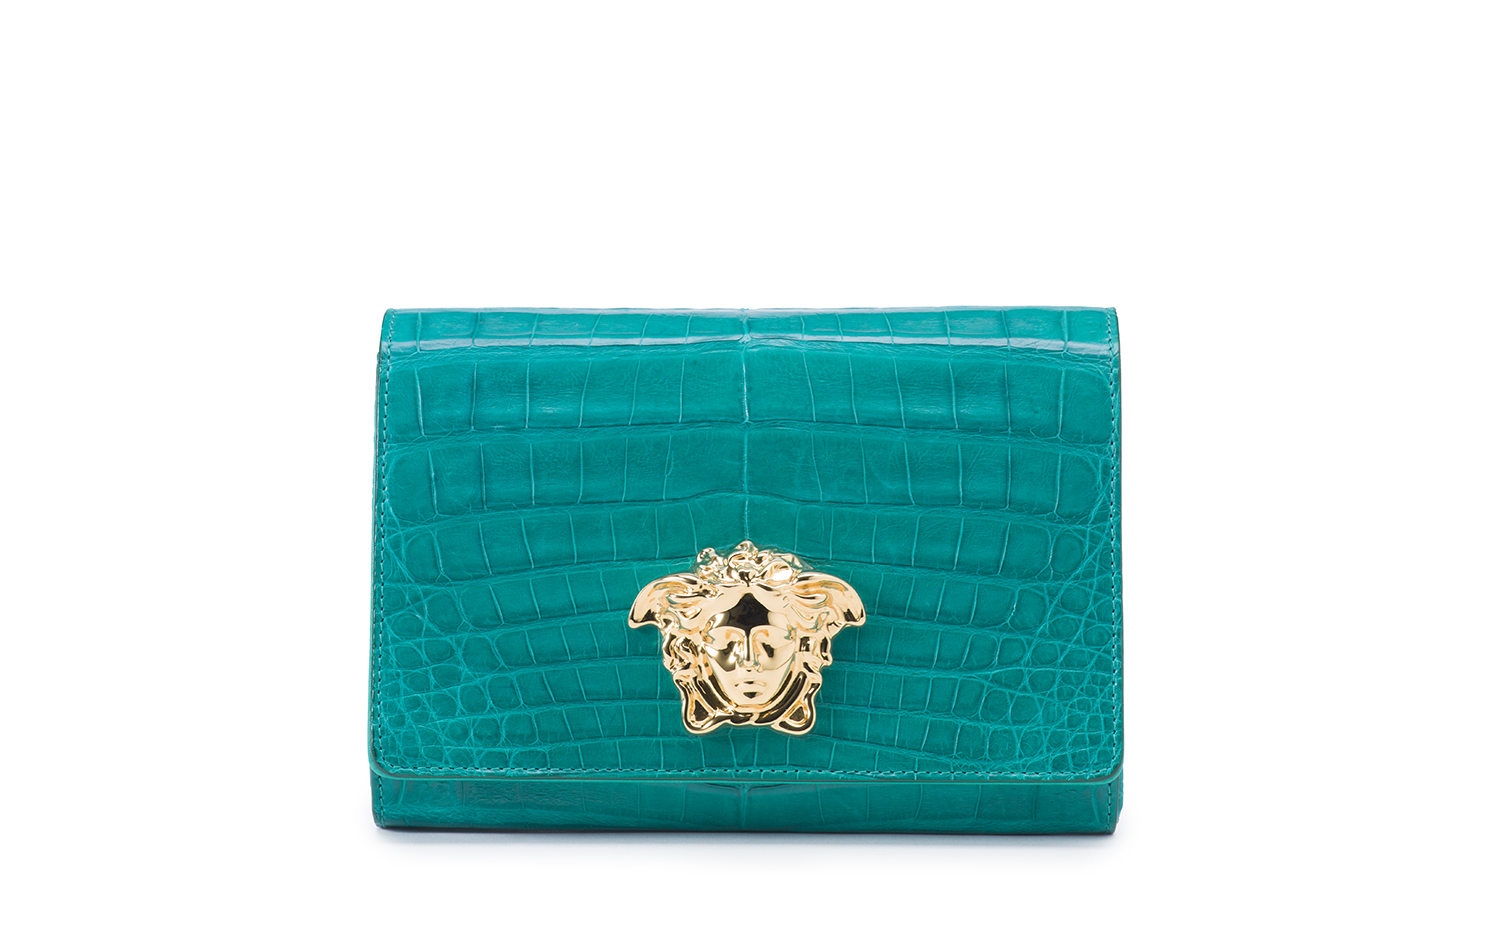 VERSACE Palazzo Evening Bag - Green